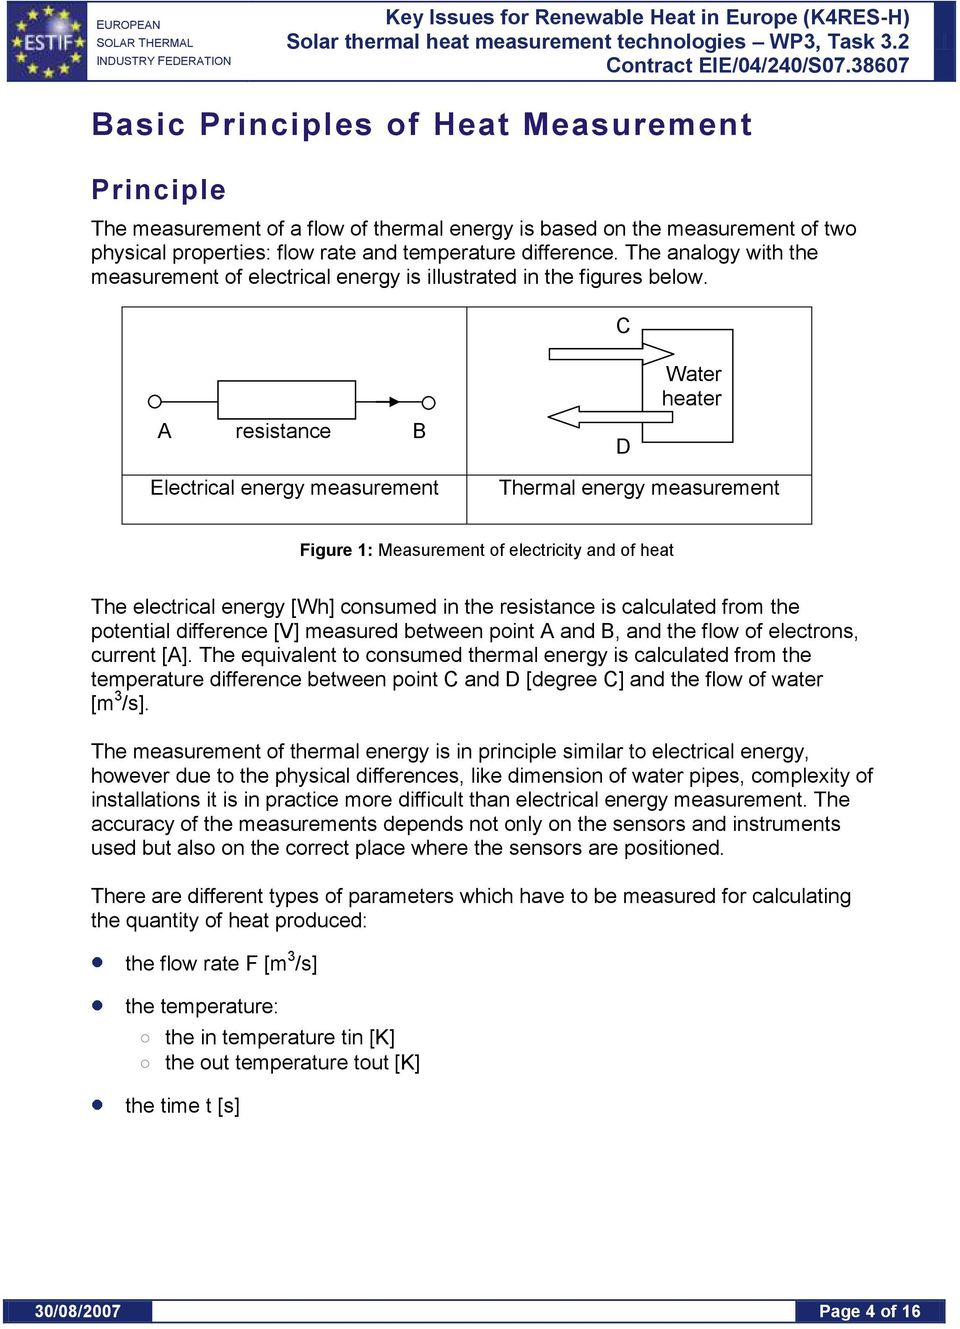 C A resistance B D Water heater Electrical energy measurement Thermal energy measurement Figure 1: Measurement of electricity and of heat The electrical energy [Wh] consumed in the resistance is